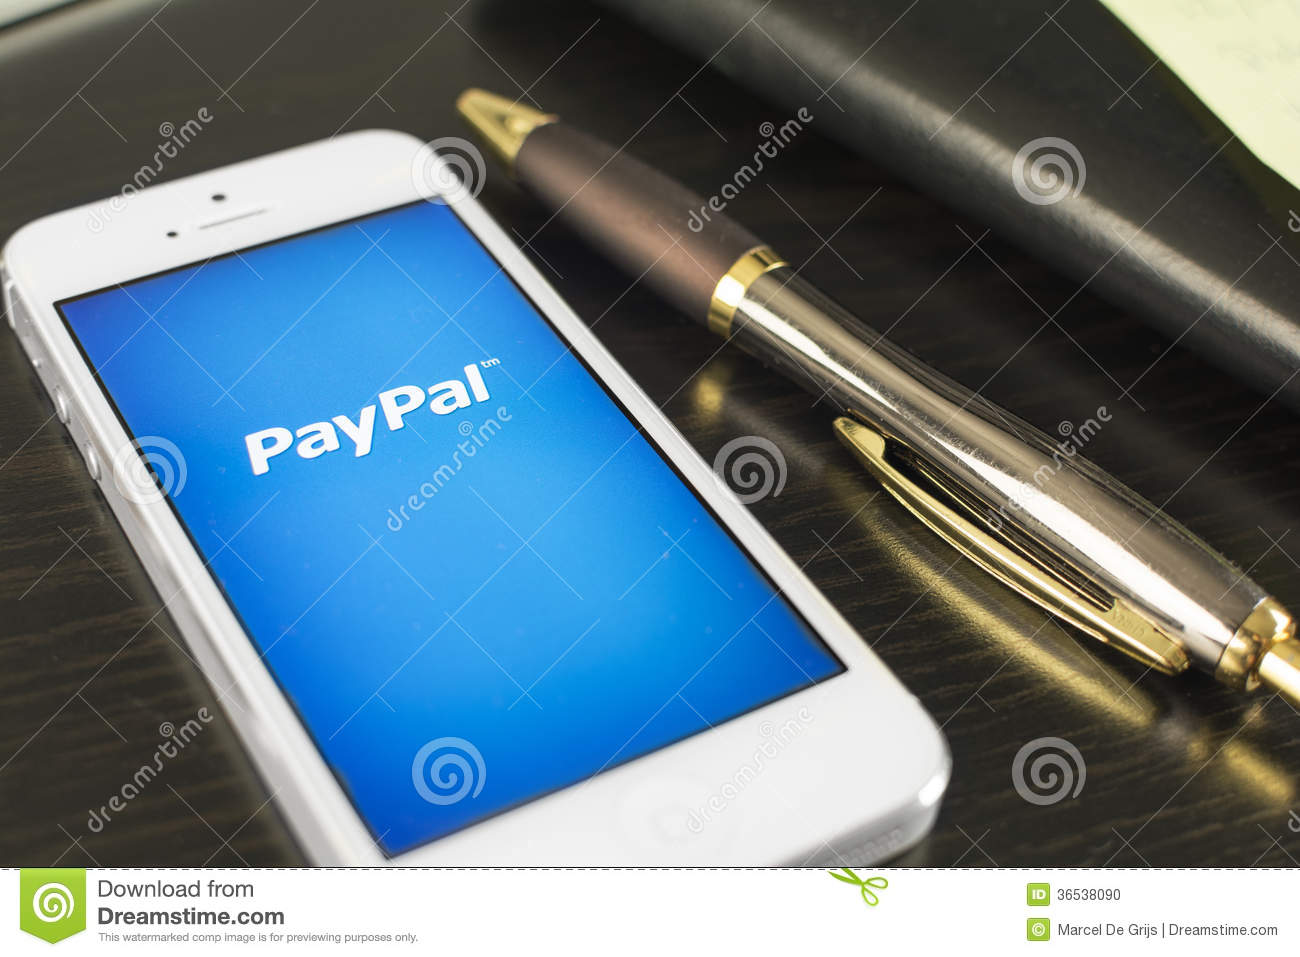 how to make an international money transfer using paypal